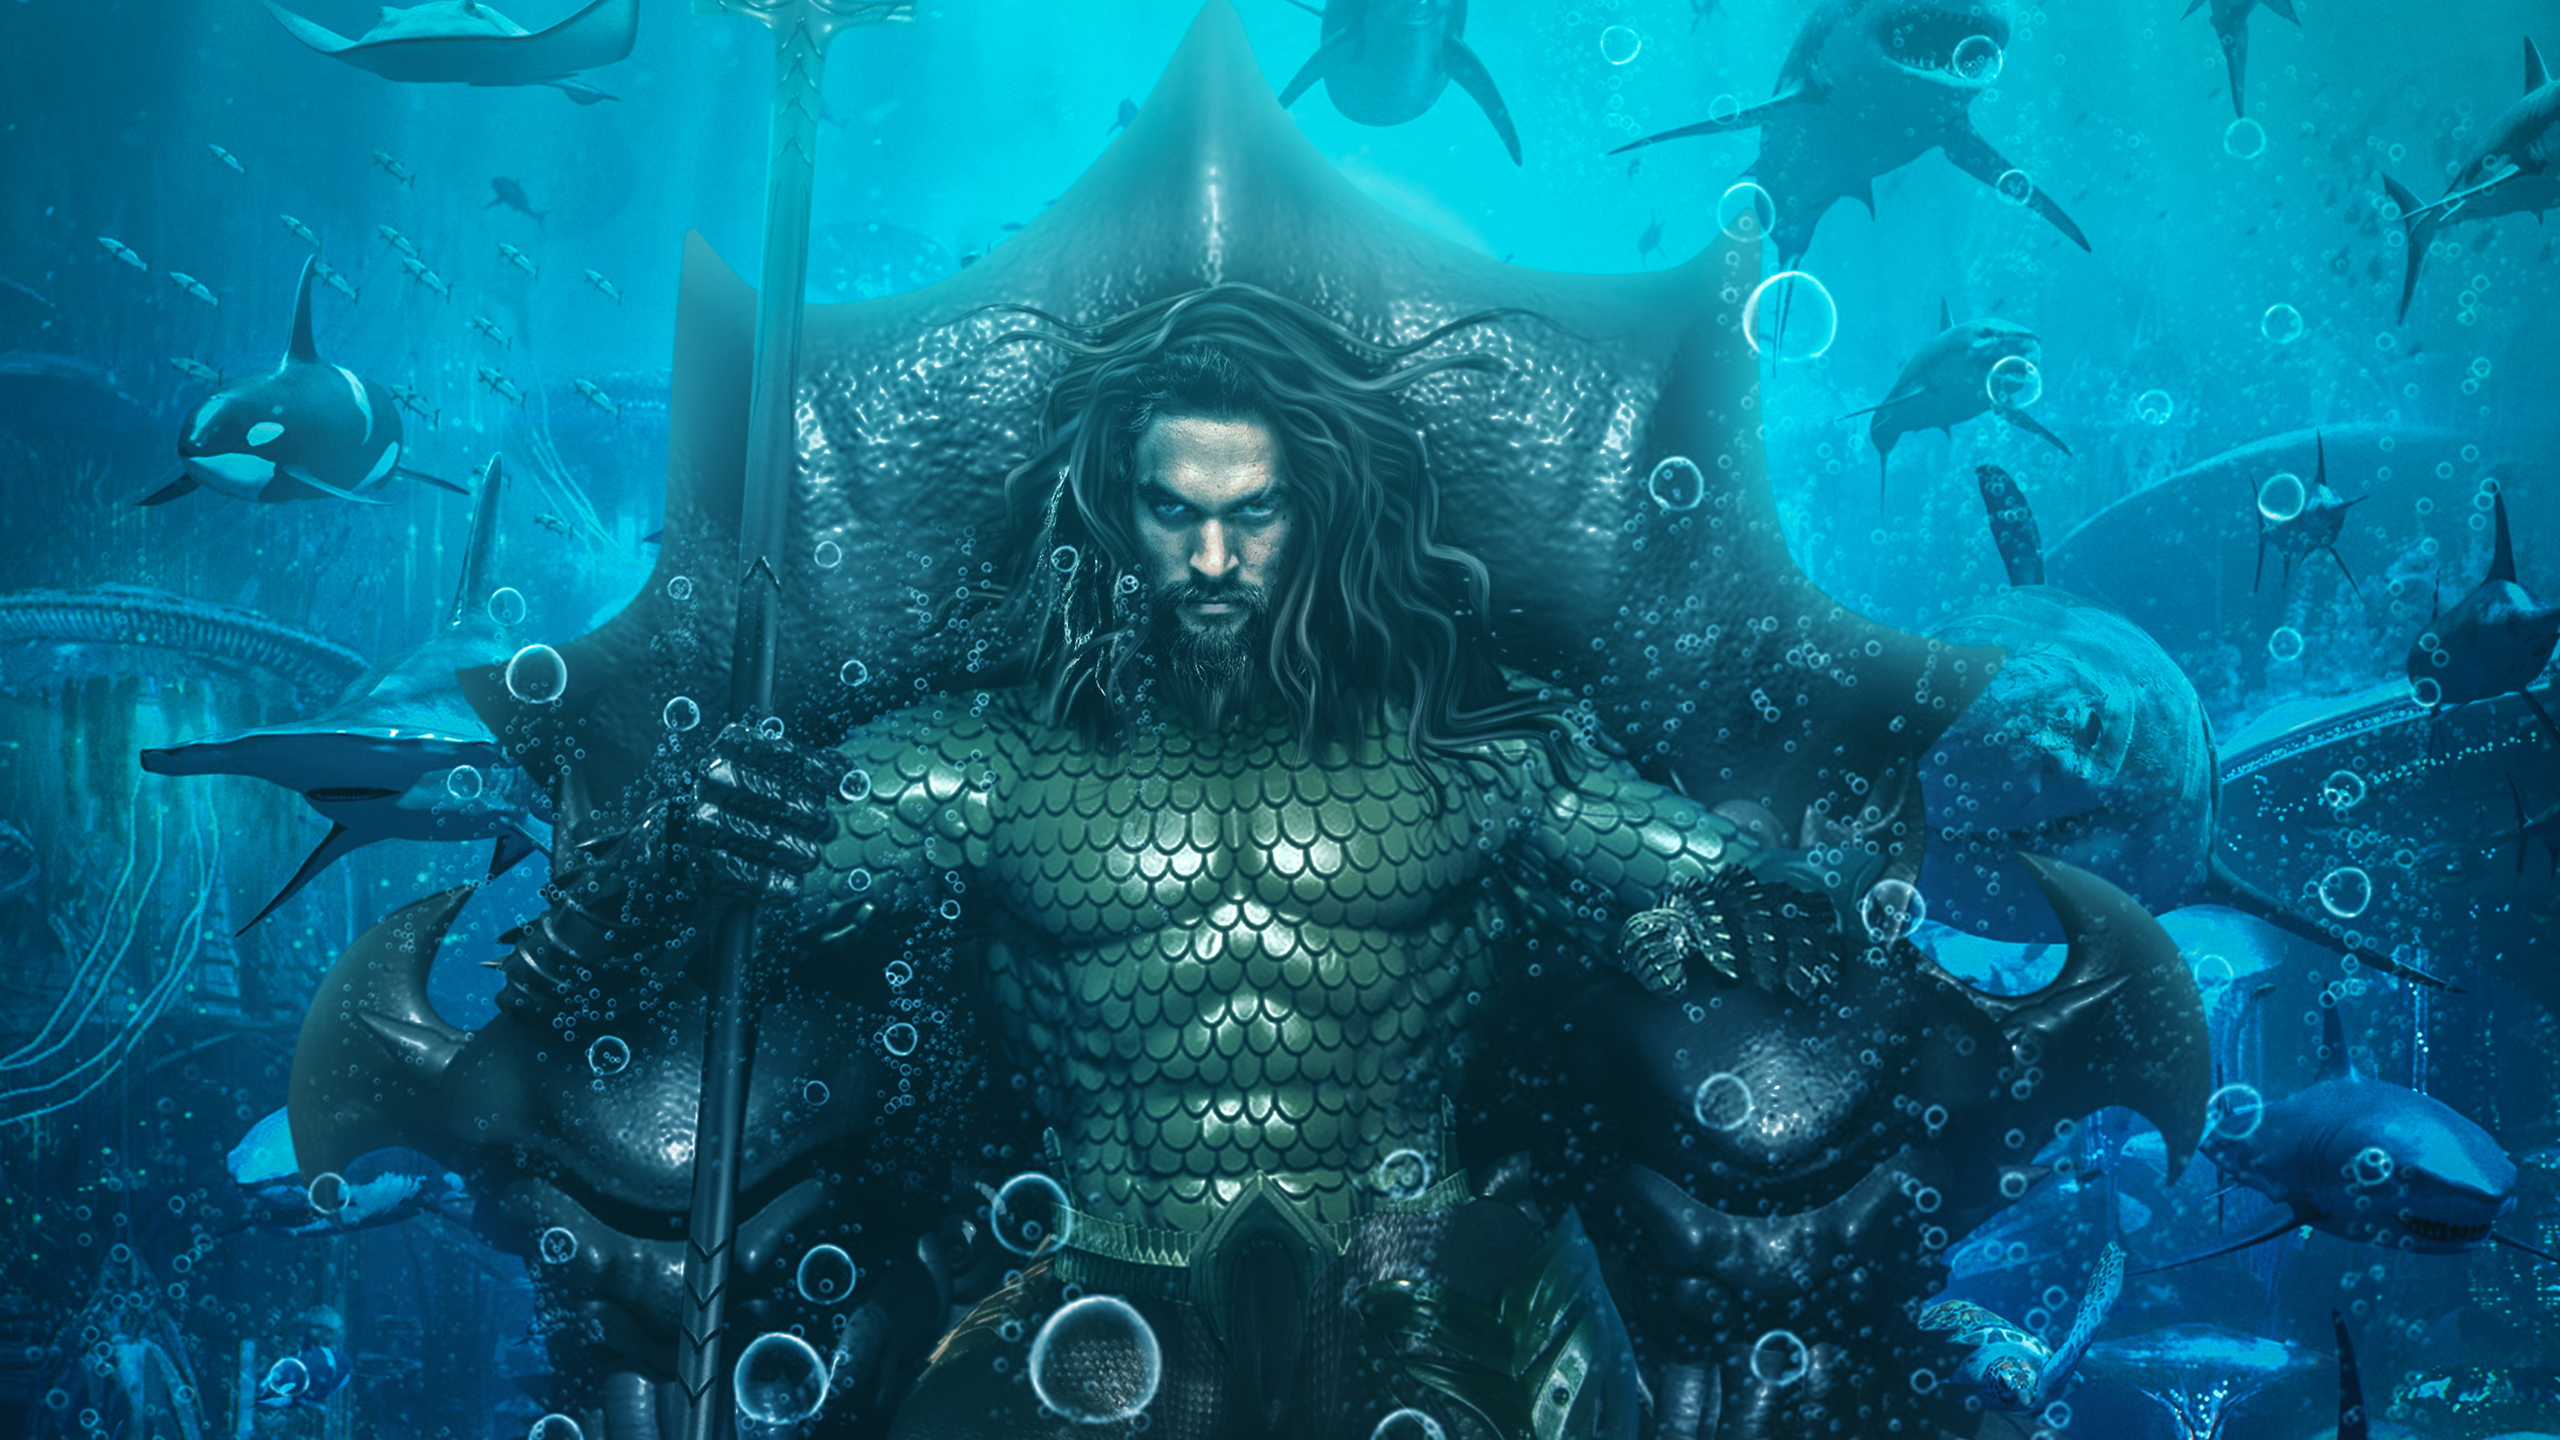 Aquaman Artwork Wallpapers Hd Wallpapers